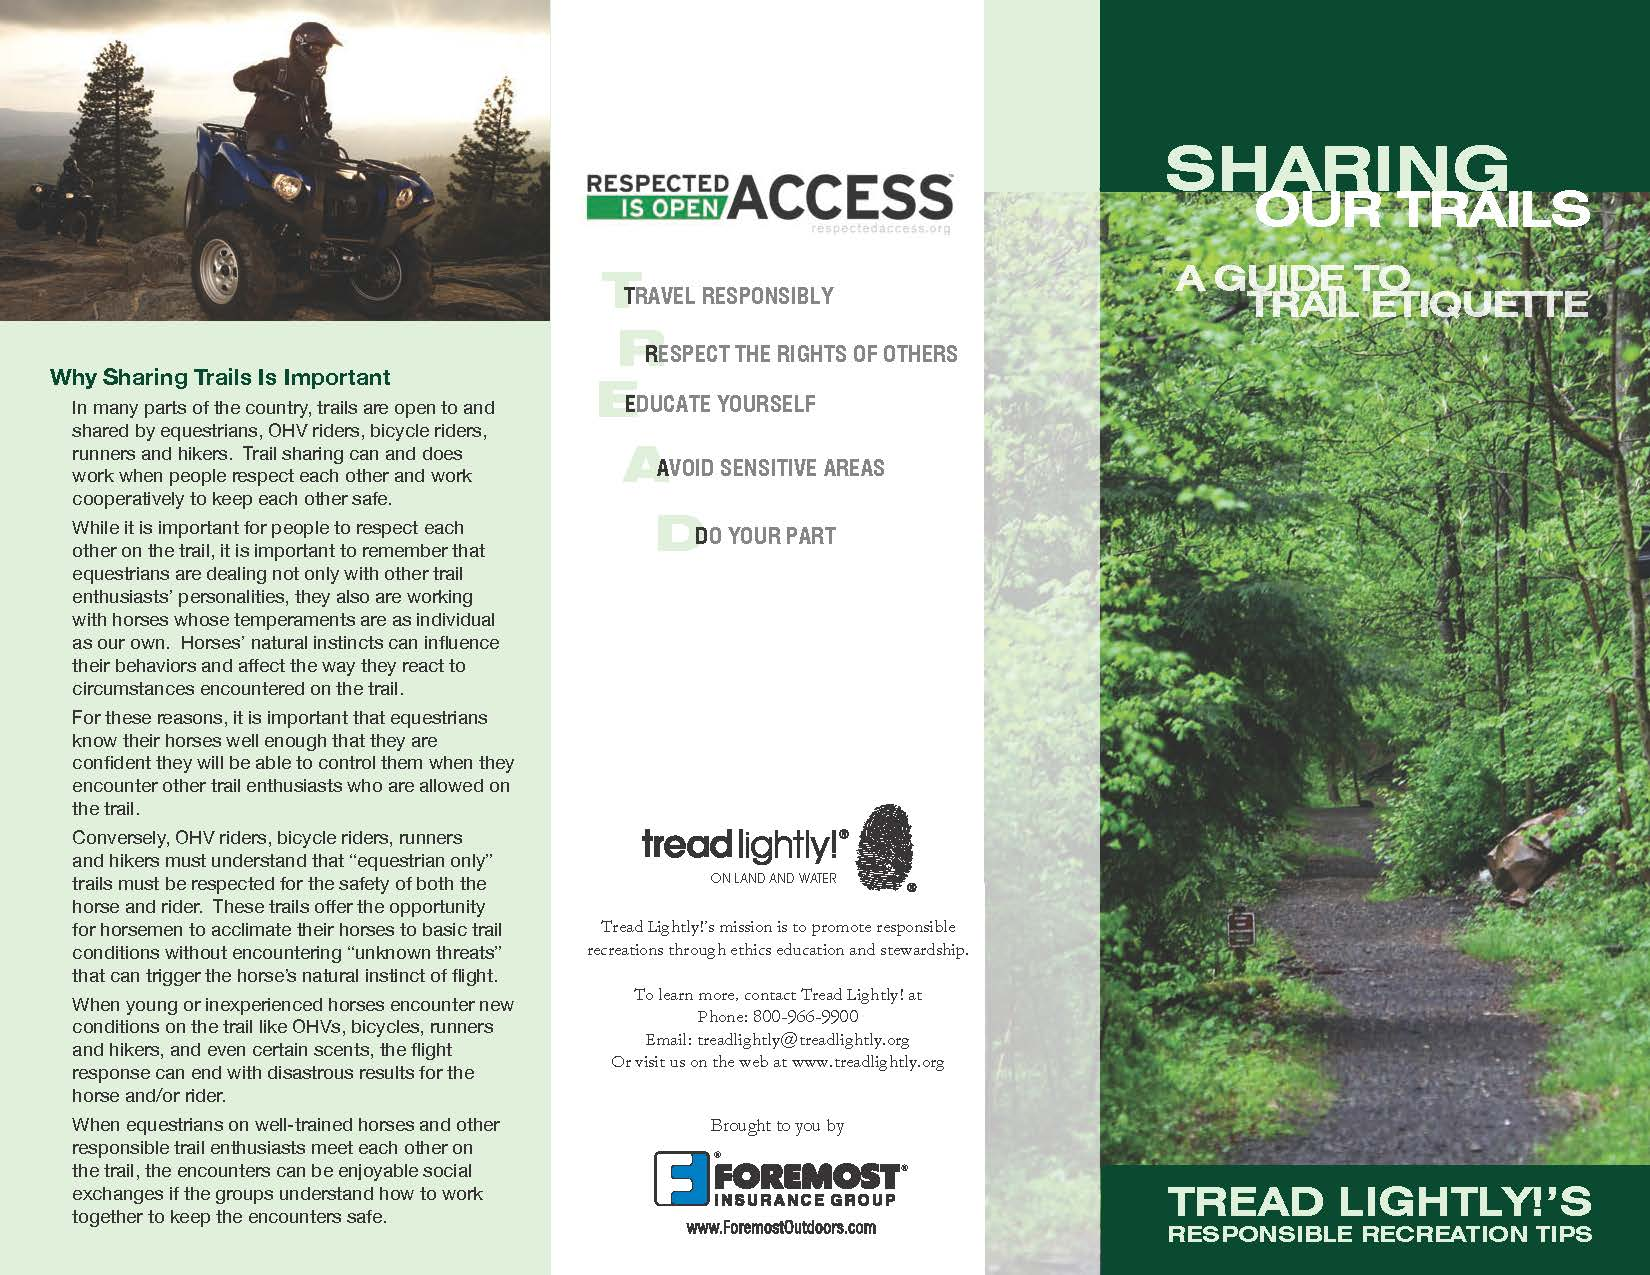 Tread Lightly on roads and water informational flyer